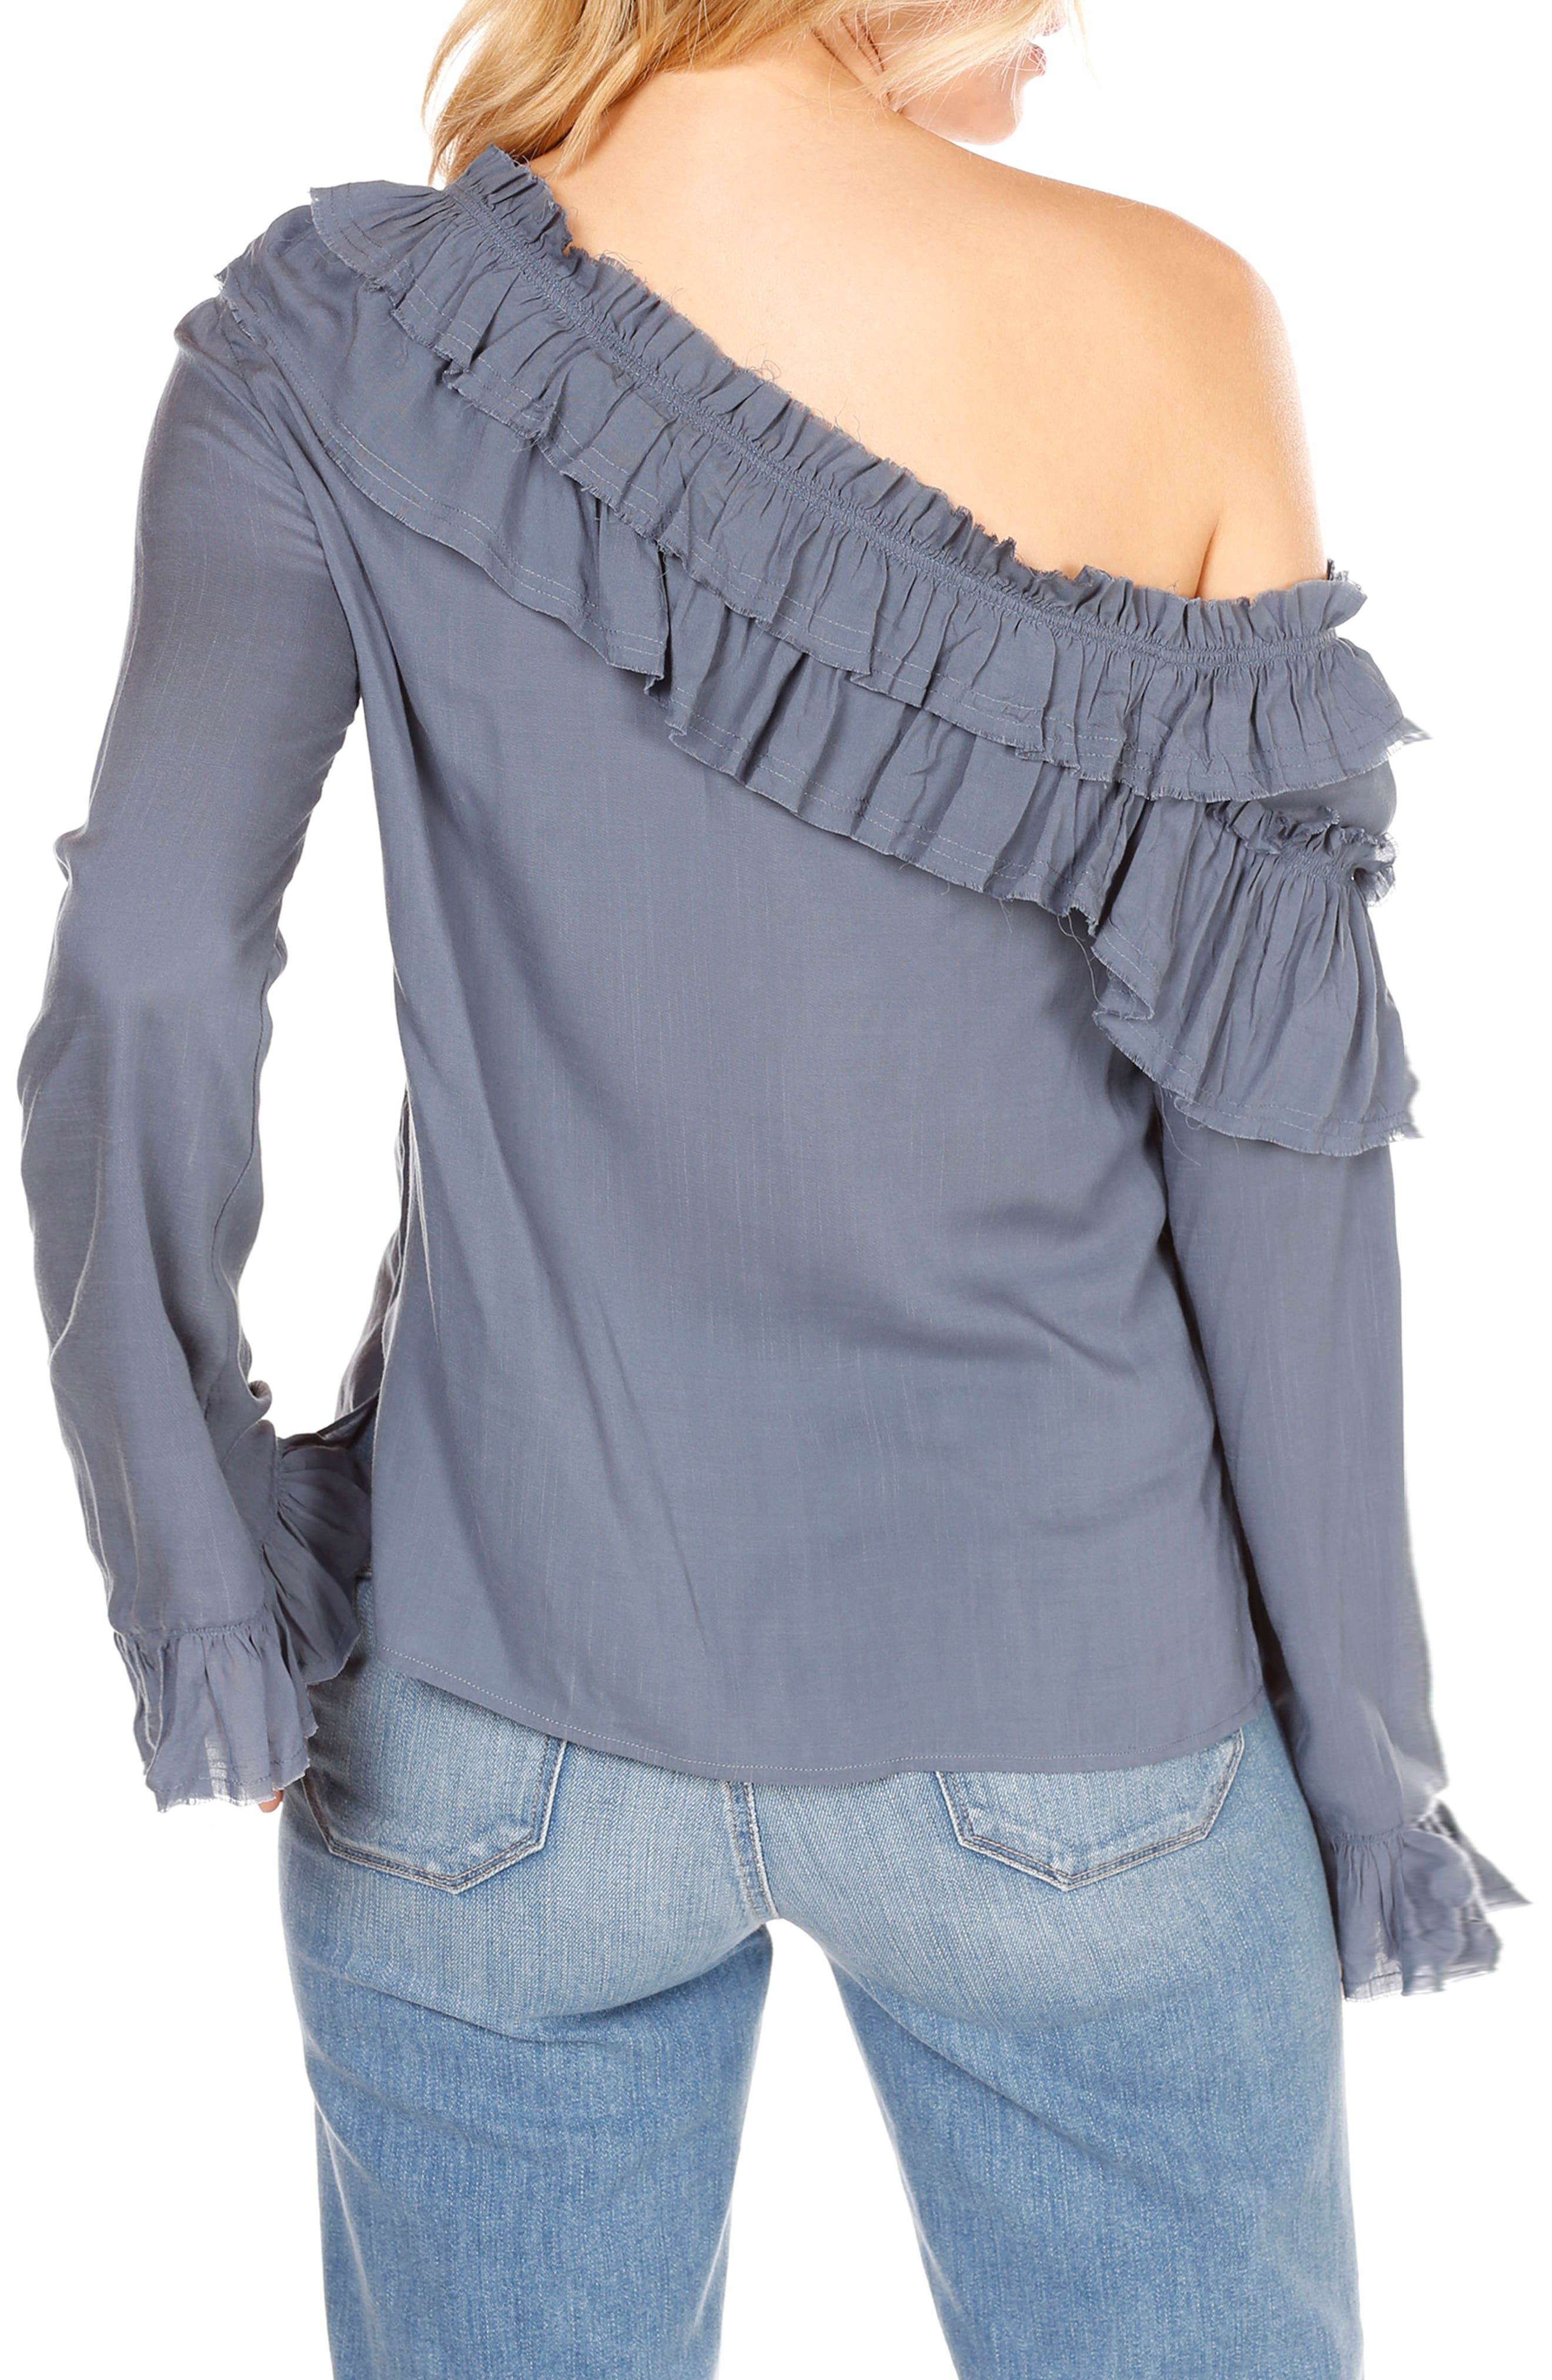 Augustina One-Shoulder Top,                             Alternate thumbnail 2, color,                             China Blue